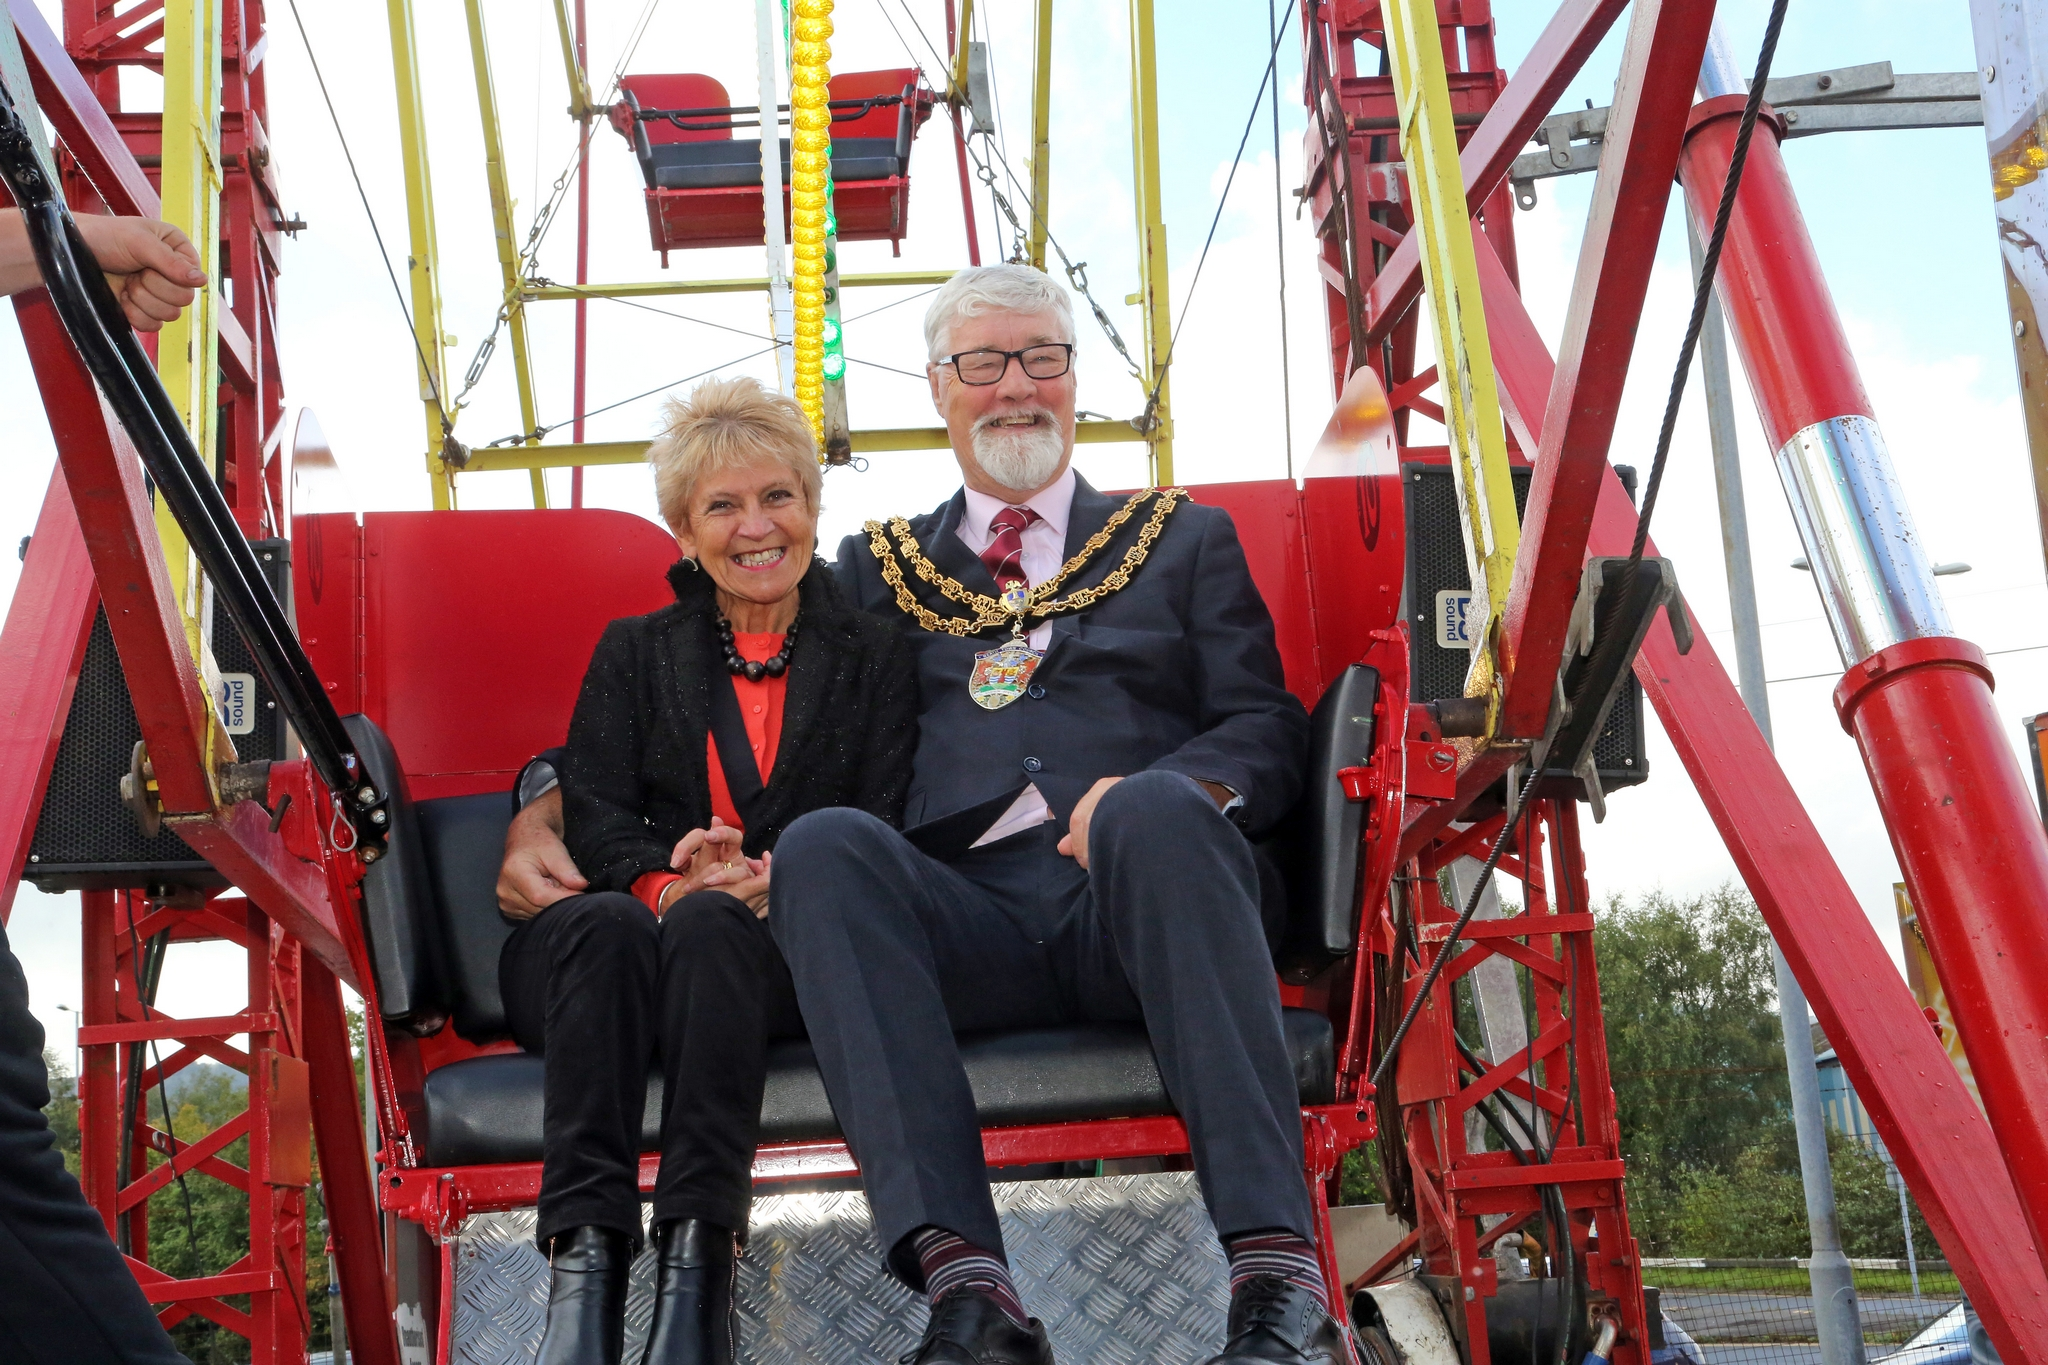 Mayor & Mayoress on ferris wheel